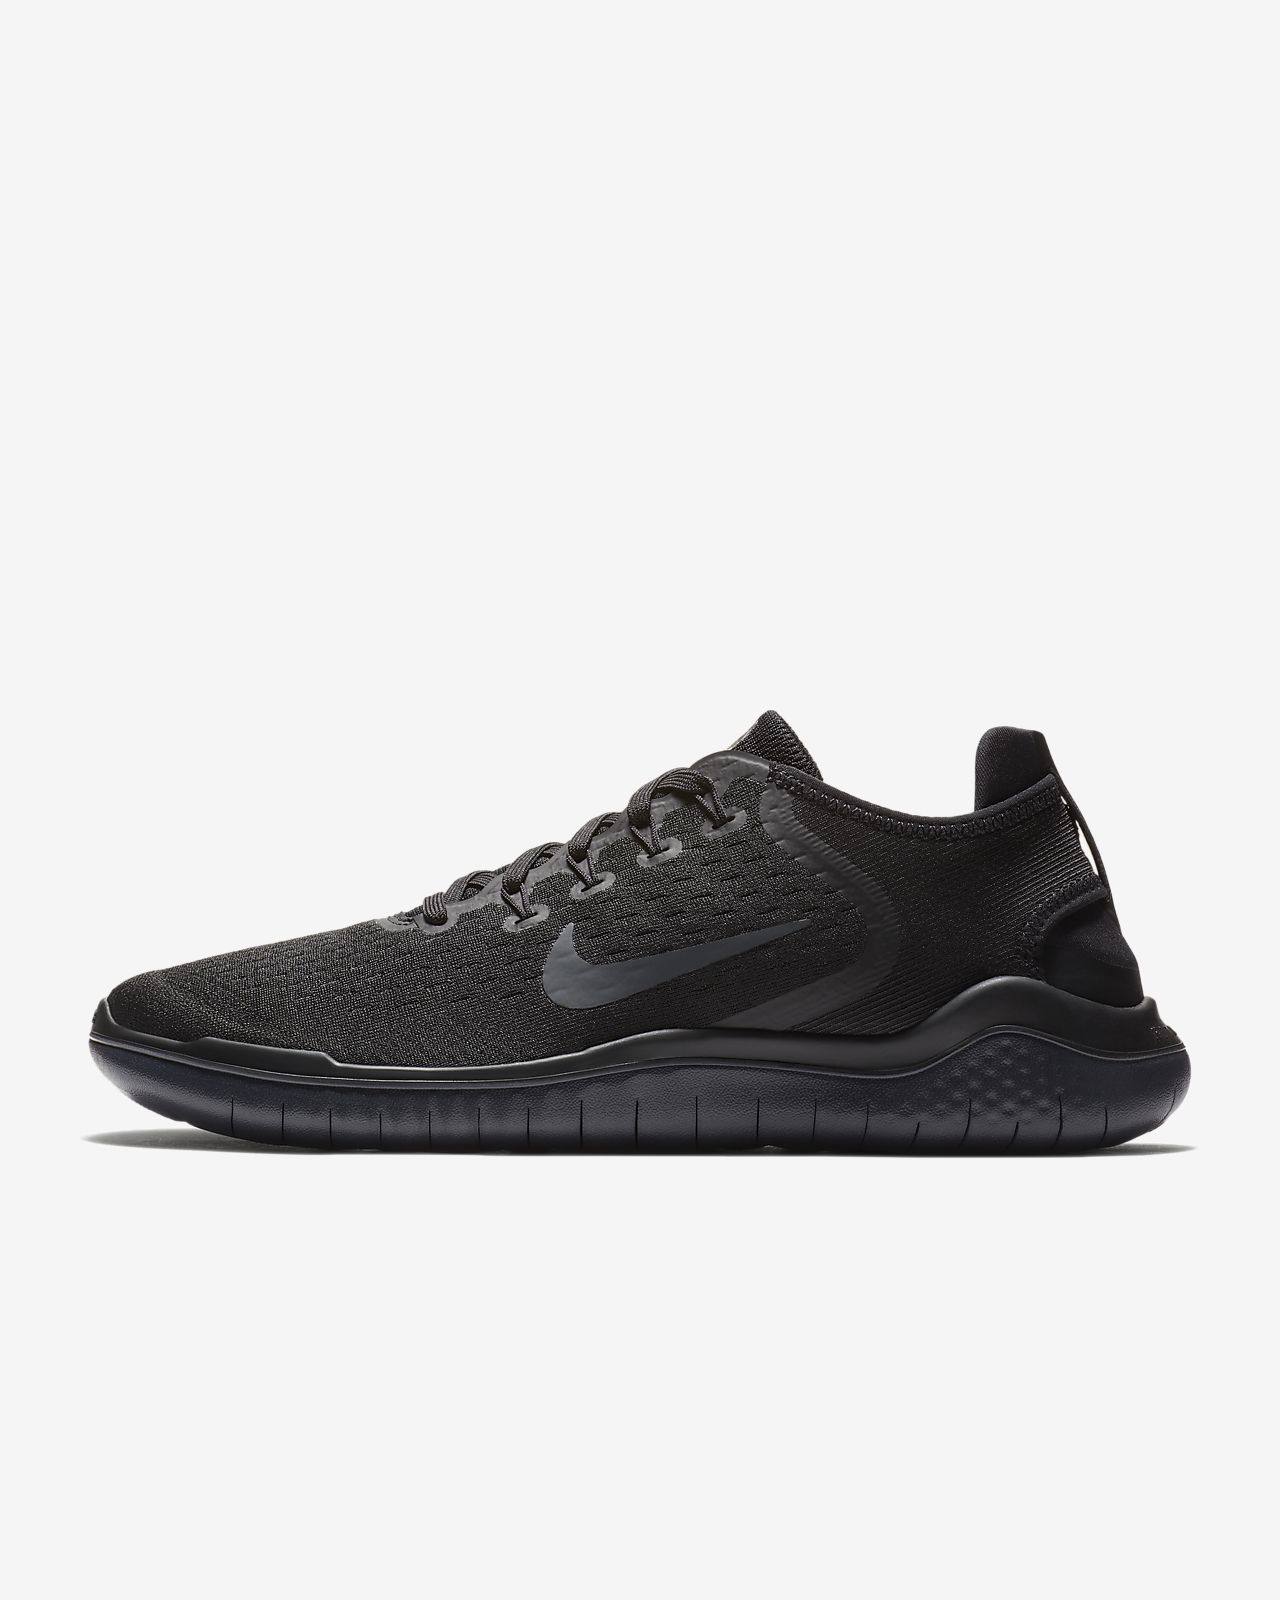 b3a2ad869f Nike Free RN 2018 Men's Running Shoe